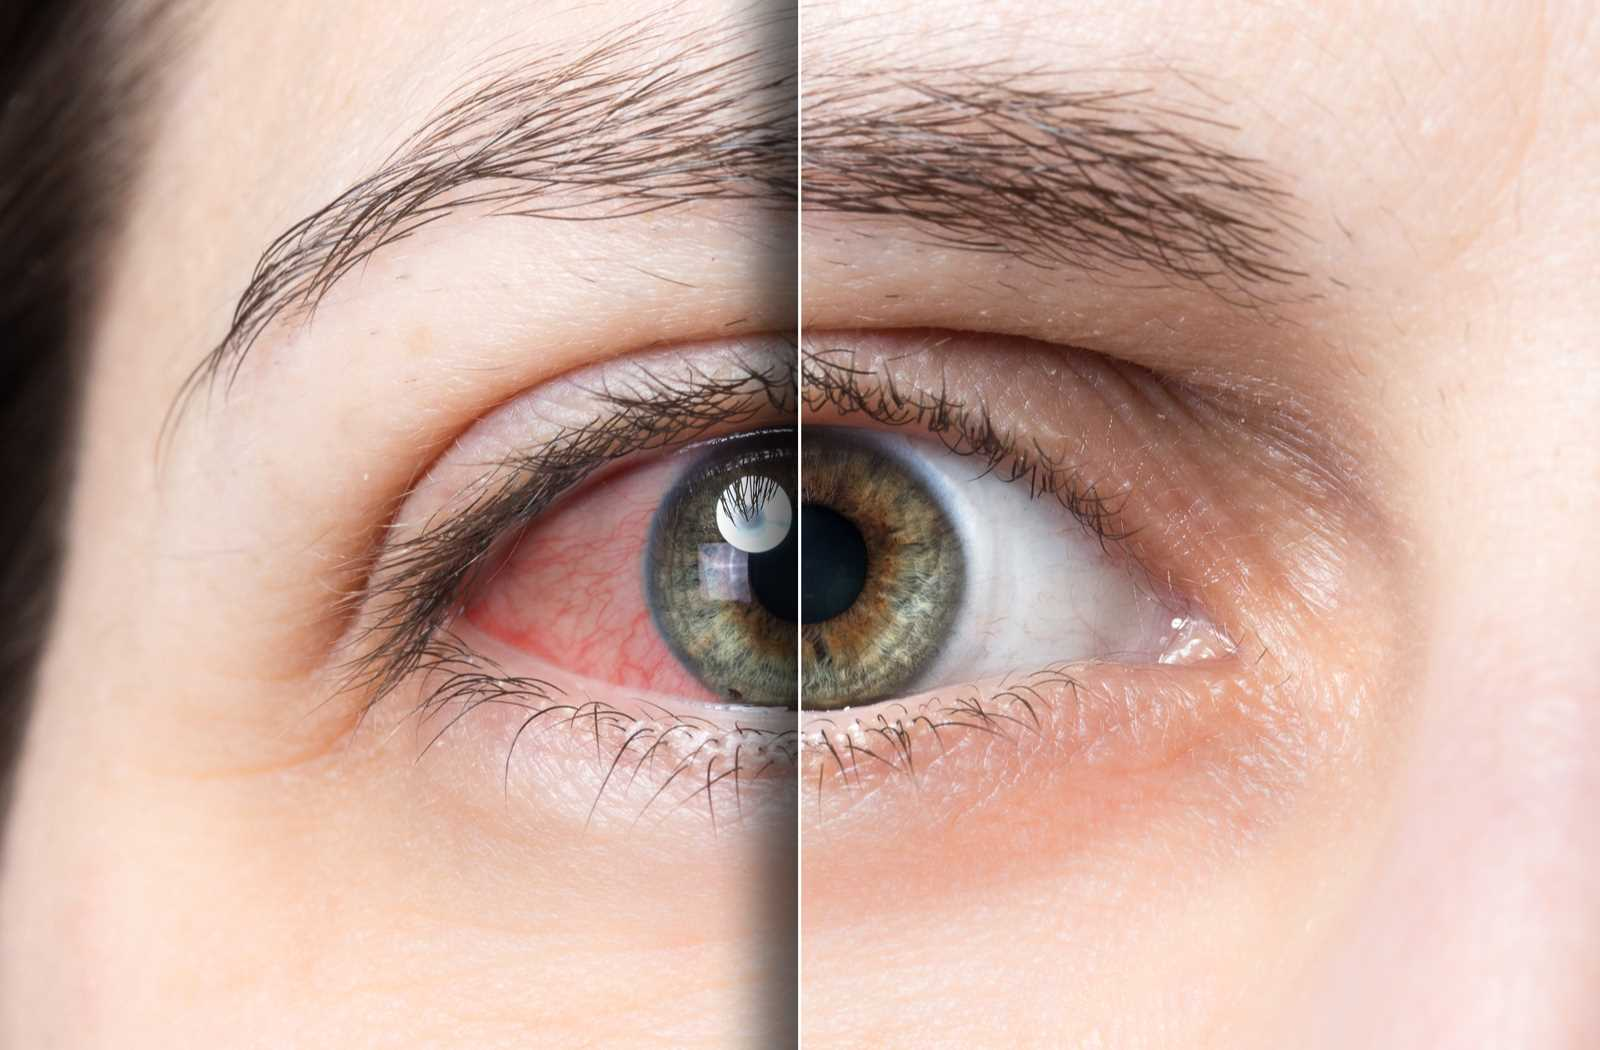 Dry eye and healthy eye mirrored side by side